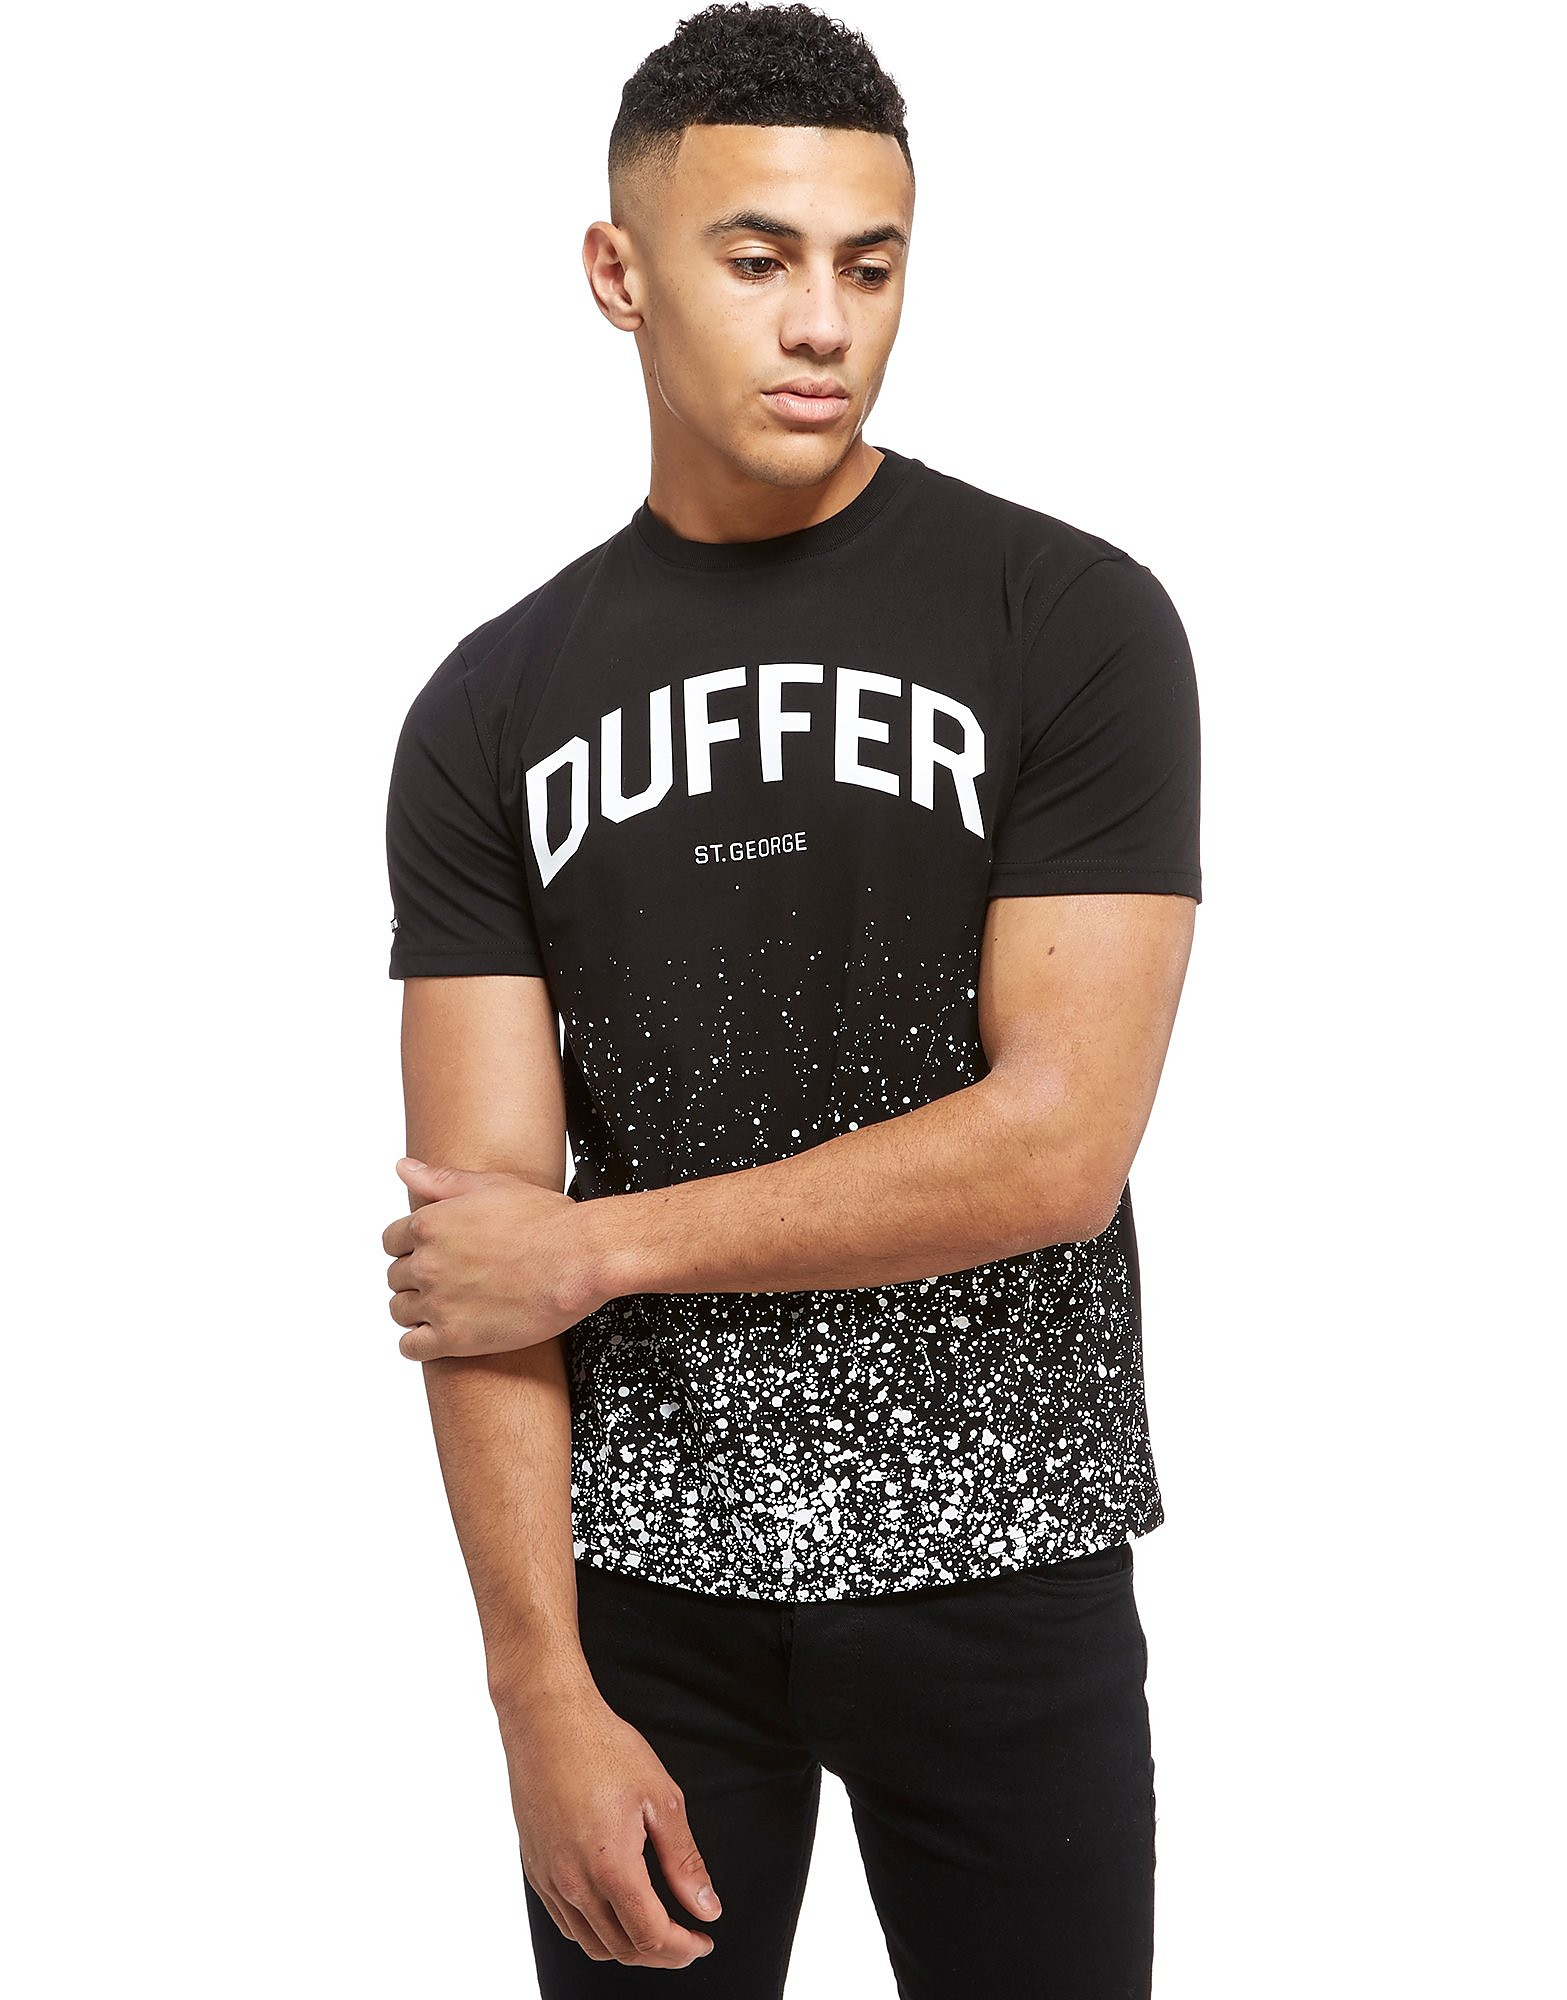 Duffer of St George Presence T-Shirt